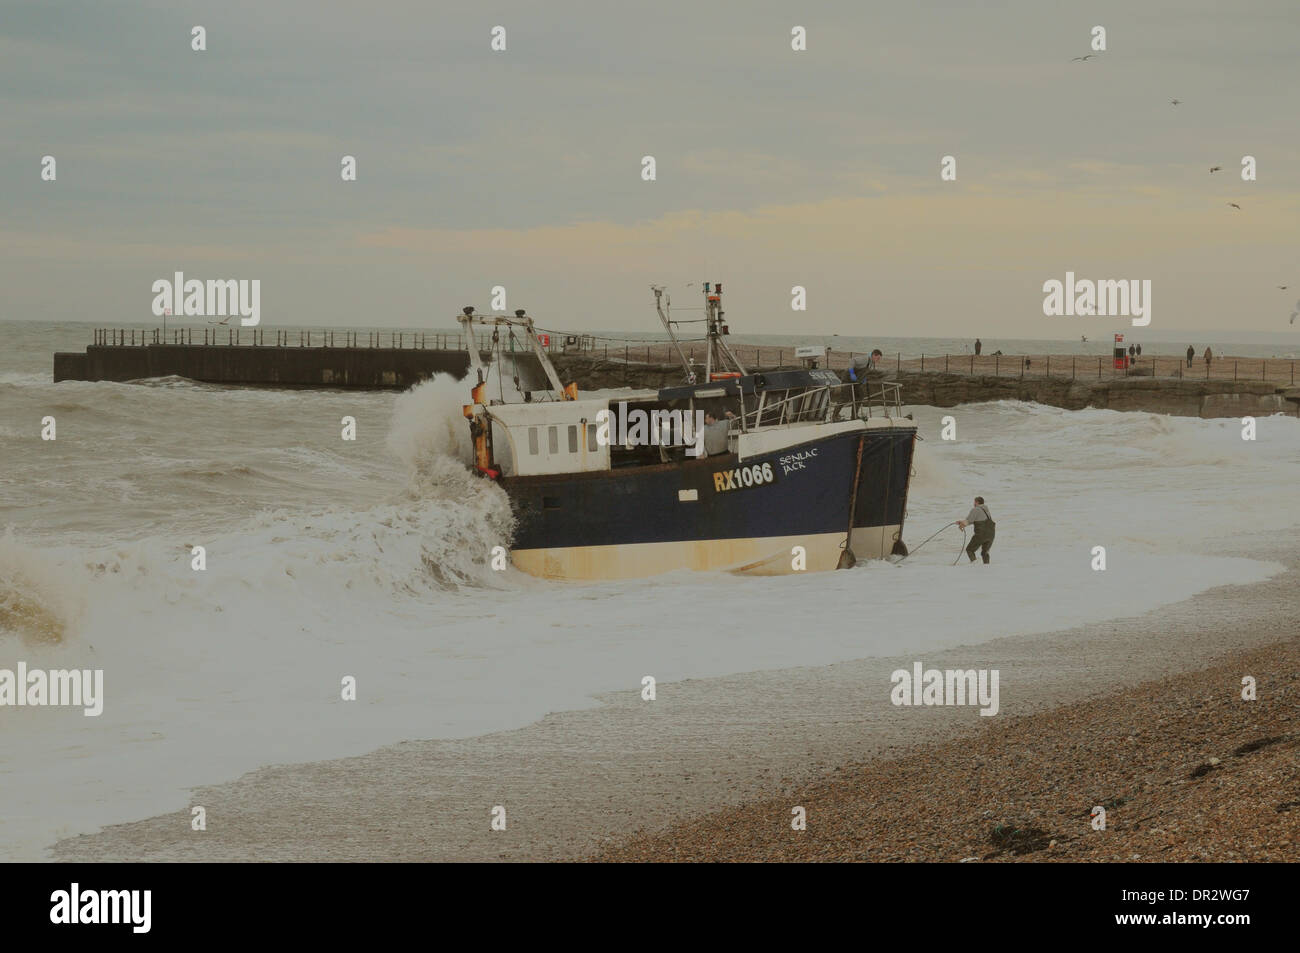 Hastings, East Sussex, UK. 18th Jan, 2014. Sea remains very choppy on the South Coast and landing looks risky as some fishing resumes. The industry has been hit very hard by the weather. Credit:  David Burr/Alamy Live News - Stock Image